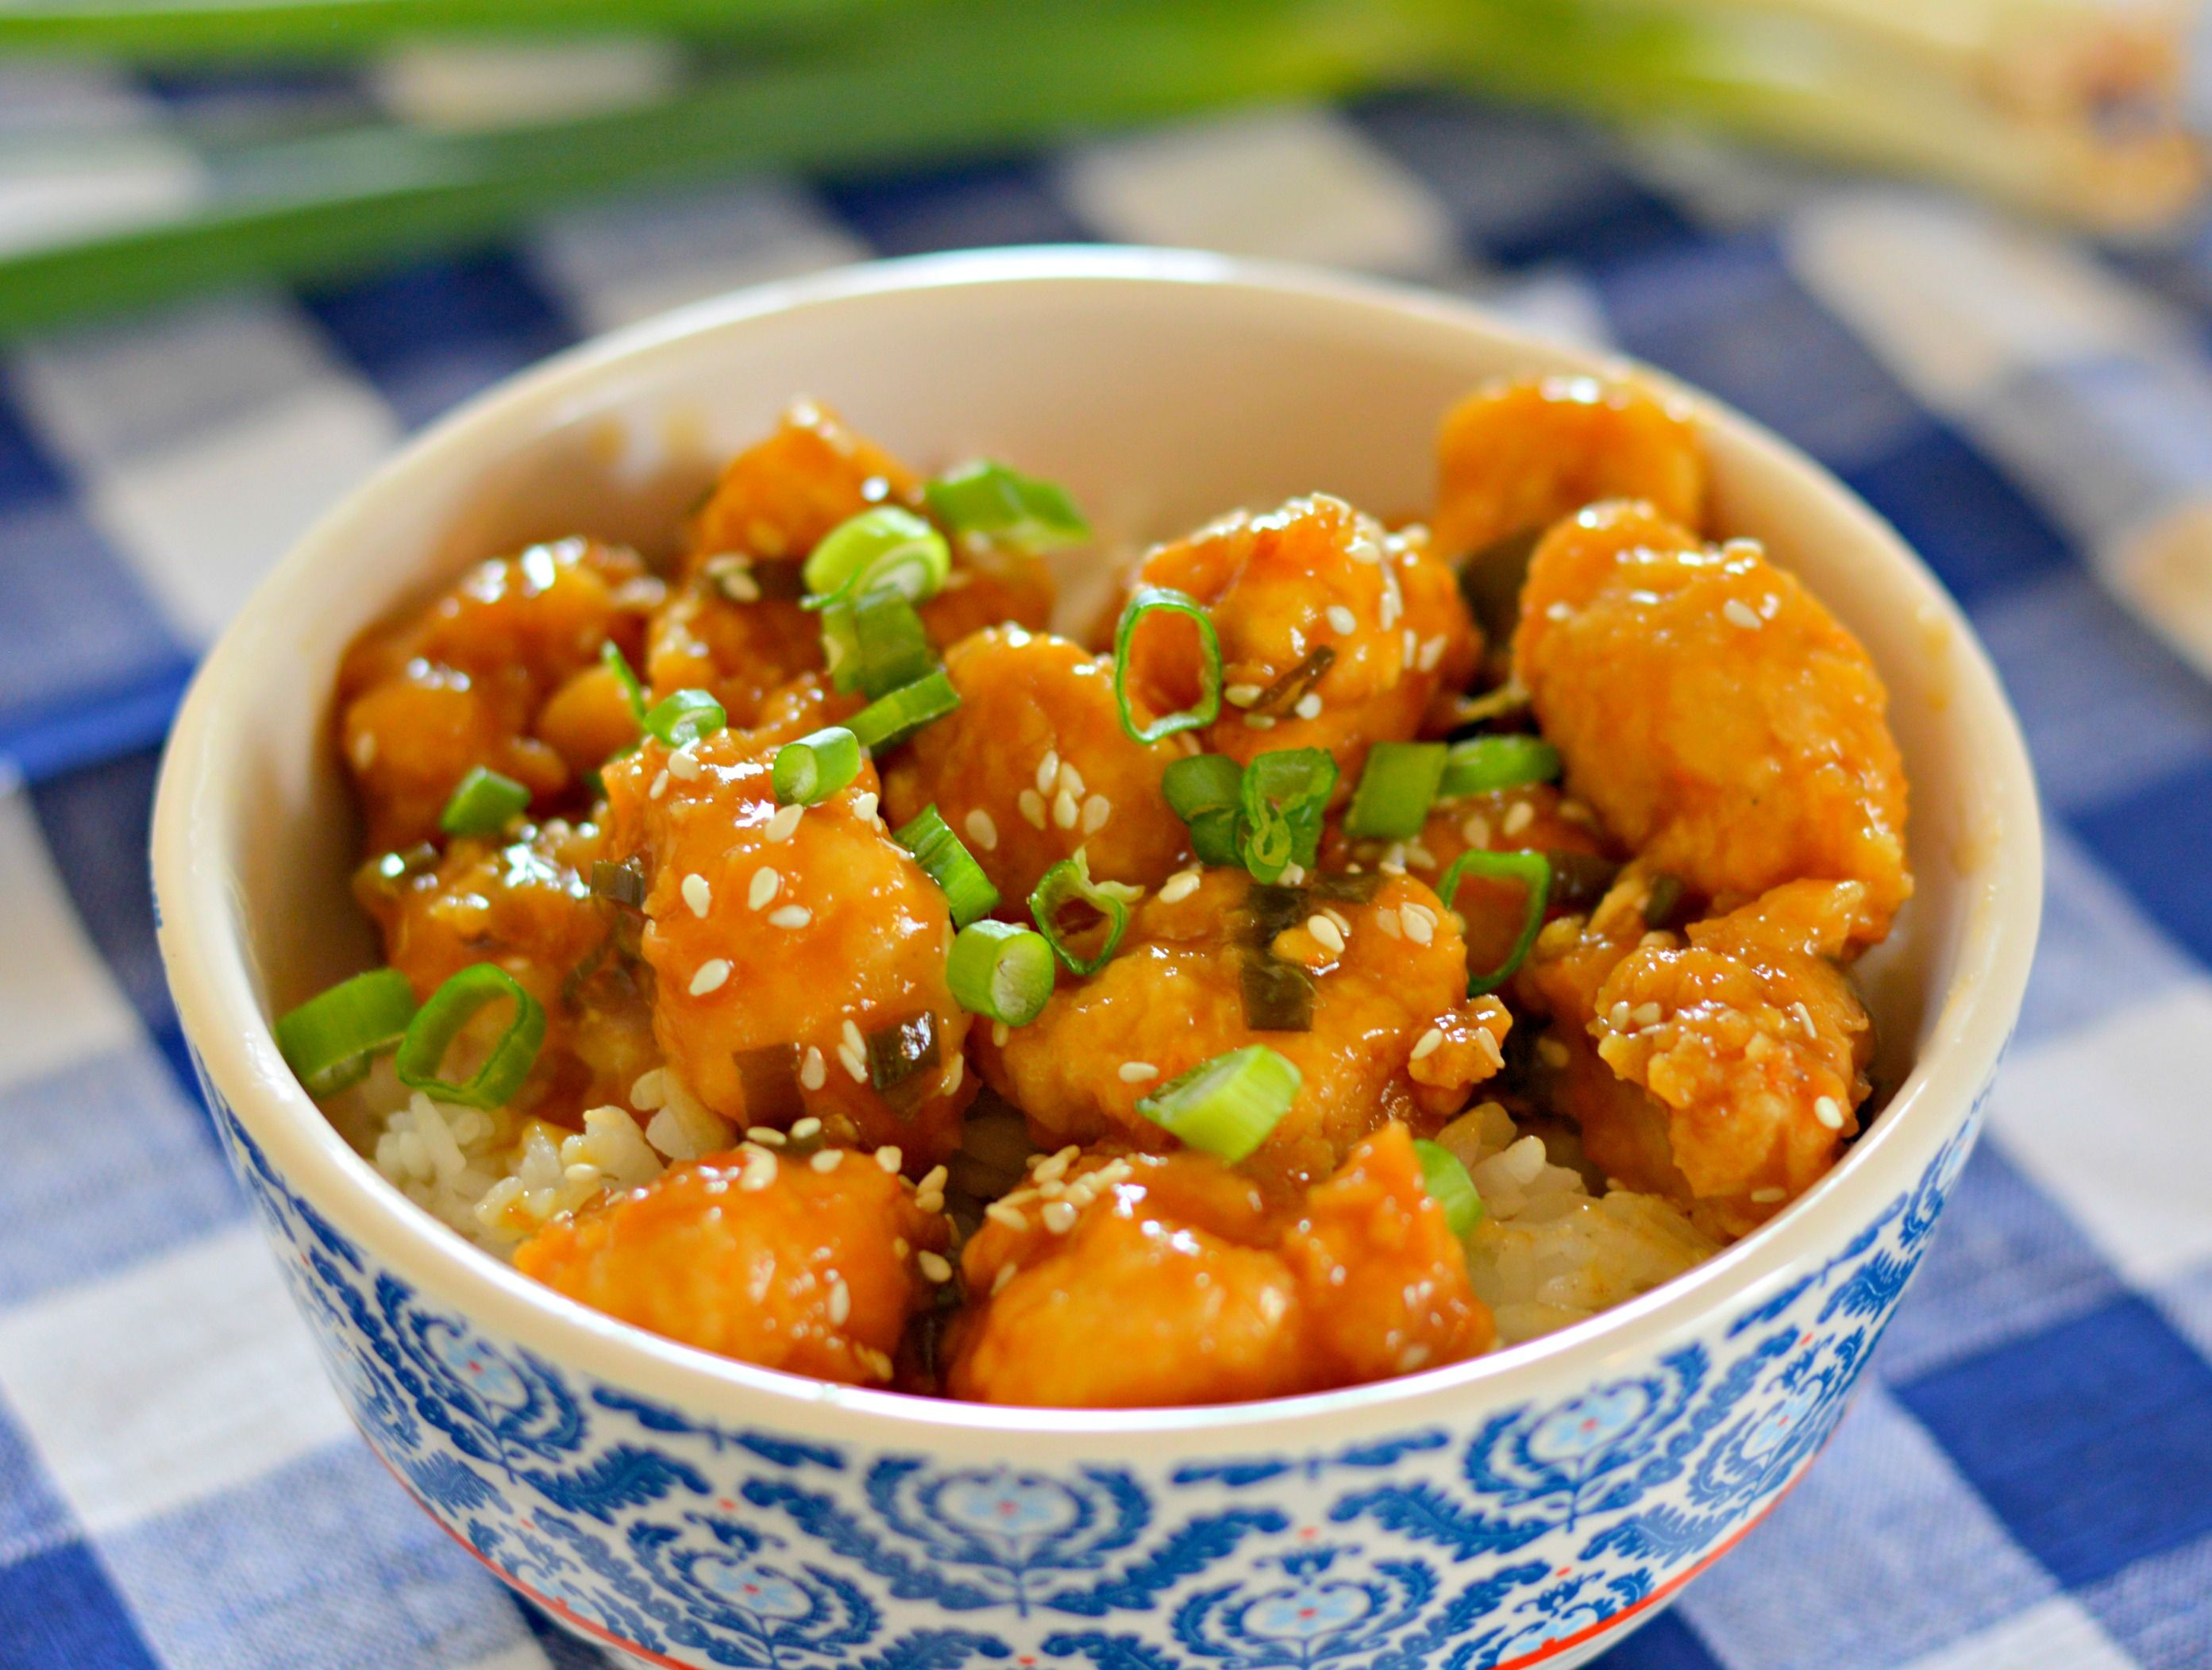 Orange chicken better than panda express recipe orange chicken orange chicken is one of my favorite chinese foods and this recipe is delicious forumfinder Choice Image